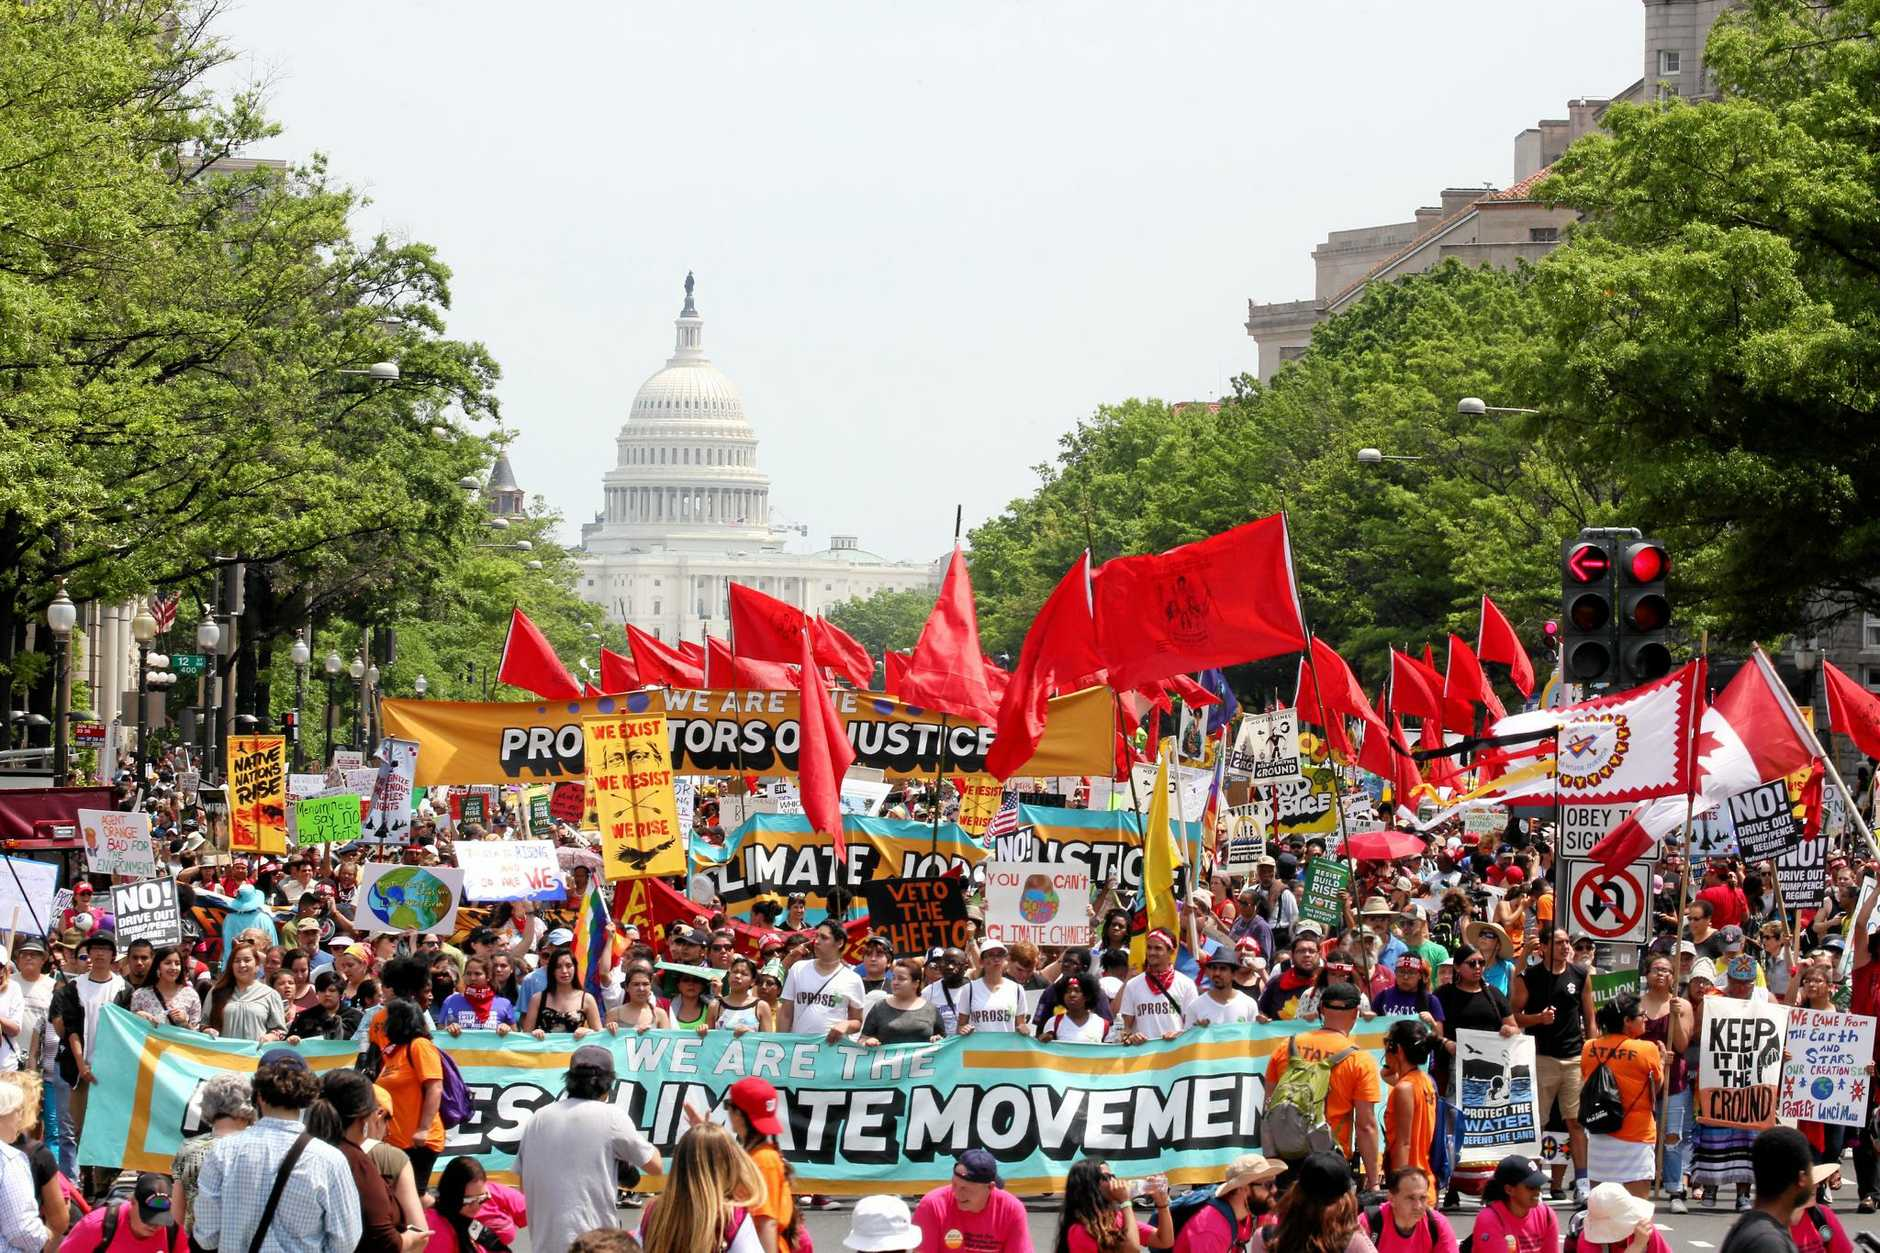 Protesters march from the US Capitol to the White House for the People's Climate March.